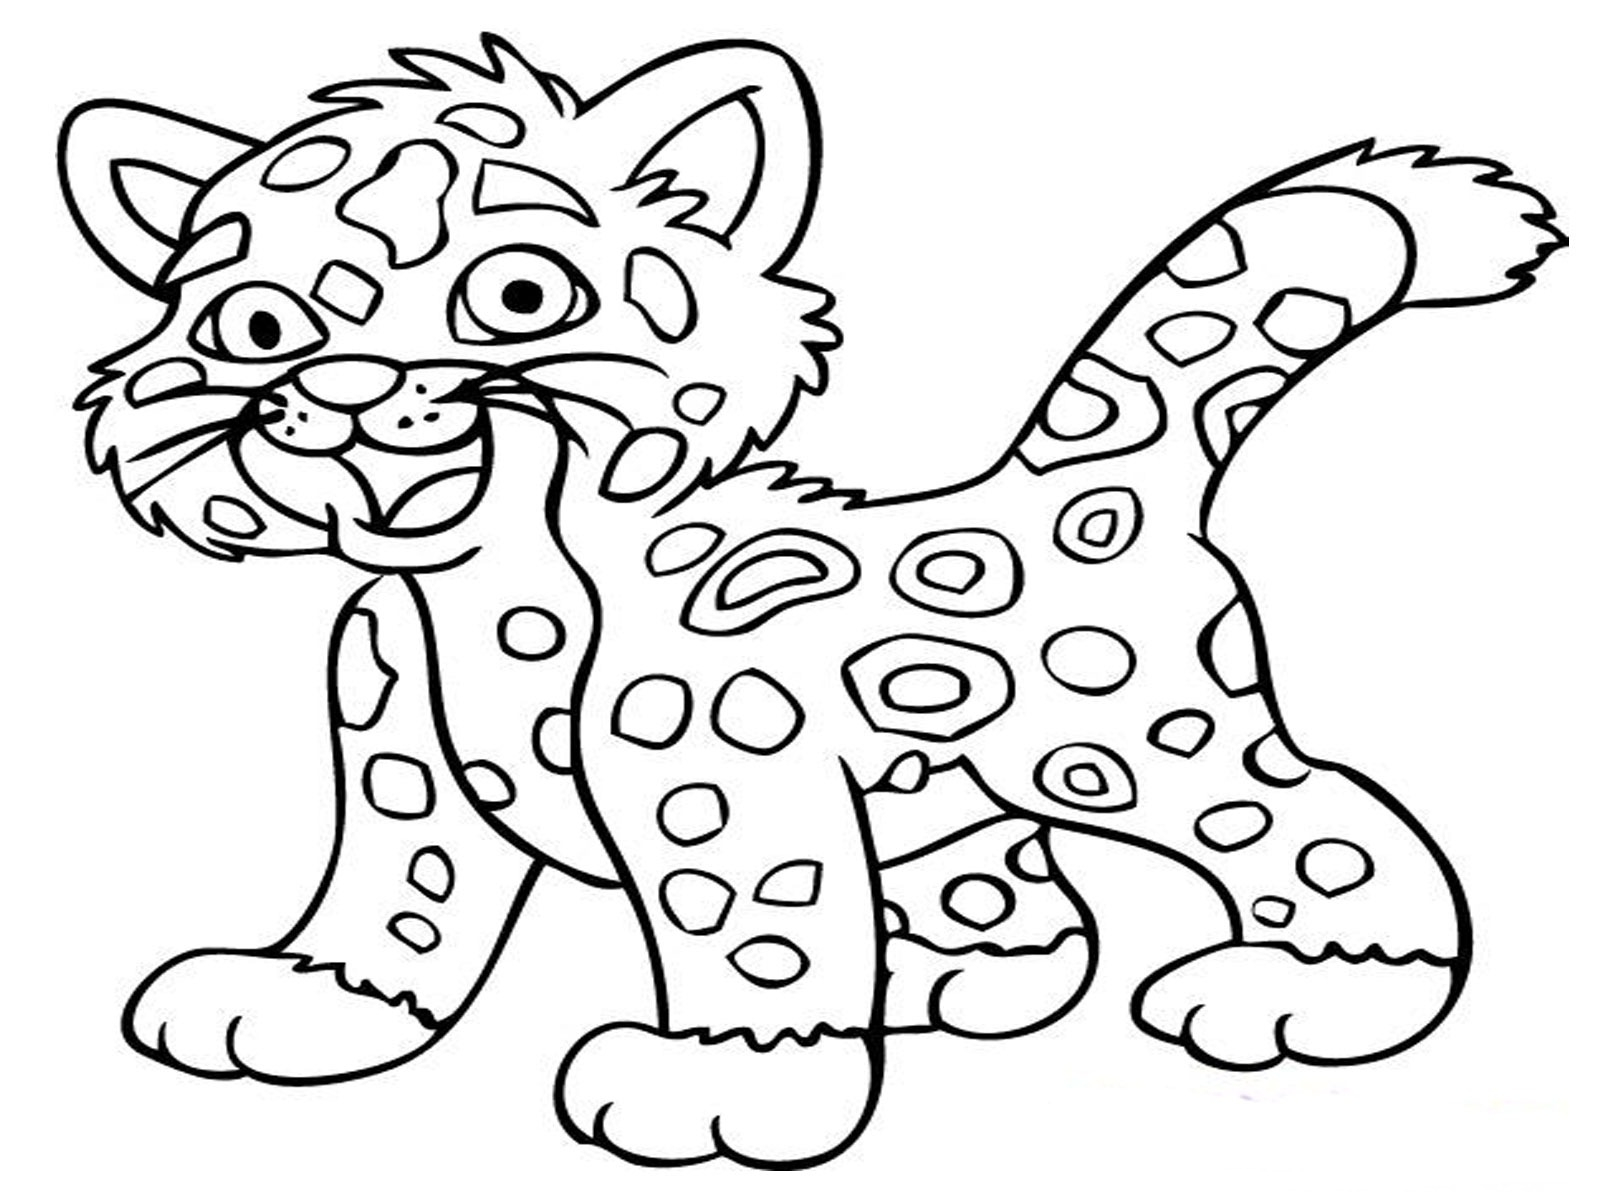 Daniel Tiger Free Coloring Pages At Getdrawings Com Free For